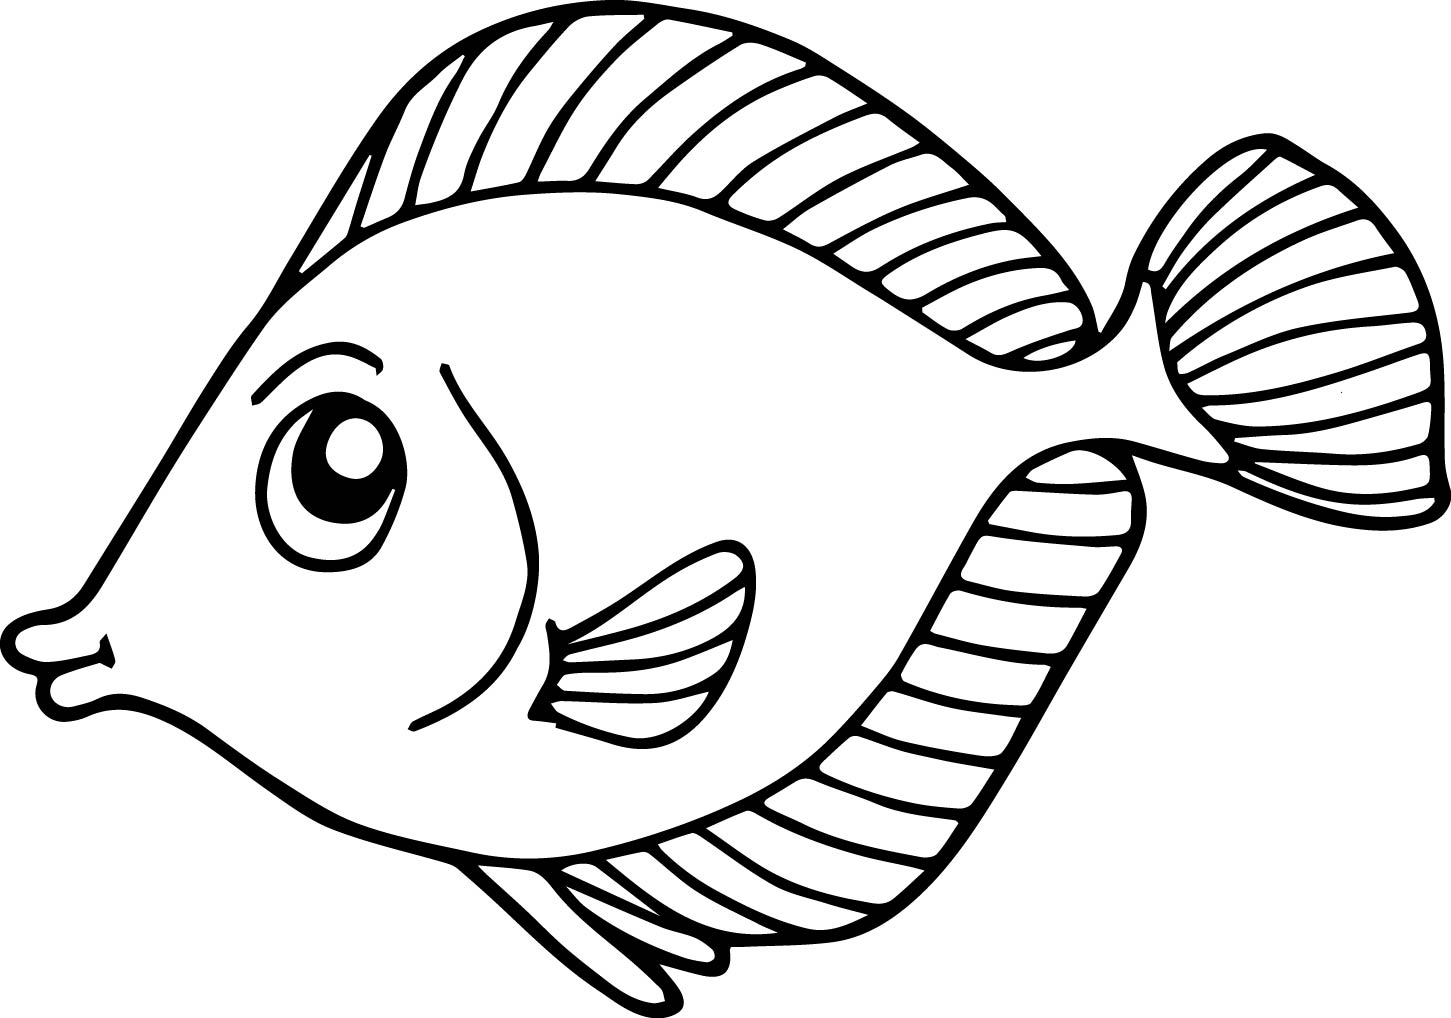 goldfish coloring fish coloring pages for kids 14 pics how to draw in 1 goldfish coloring